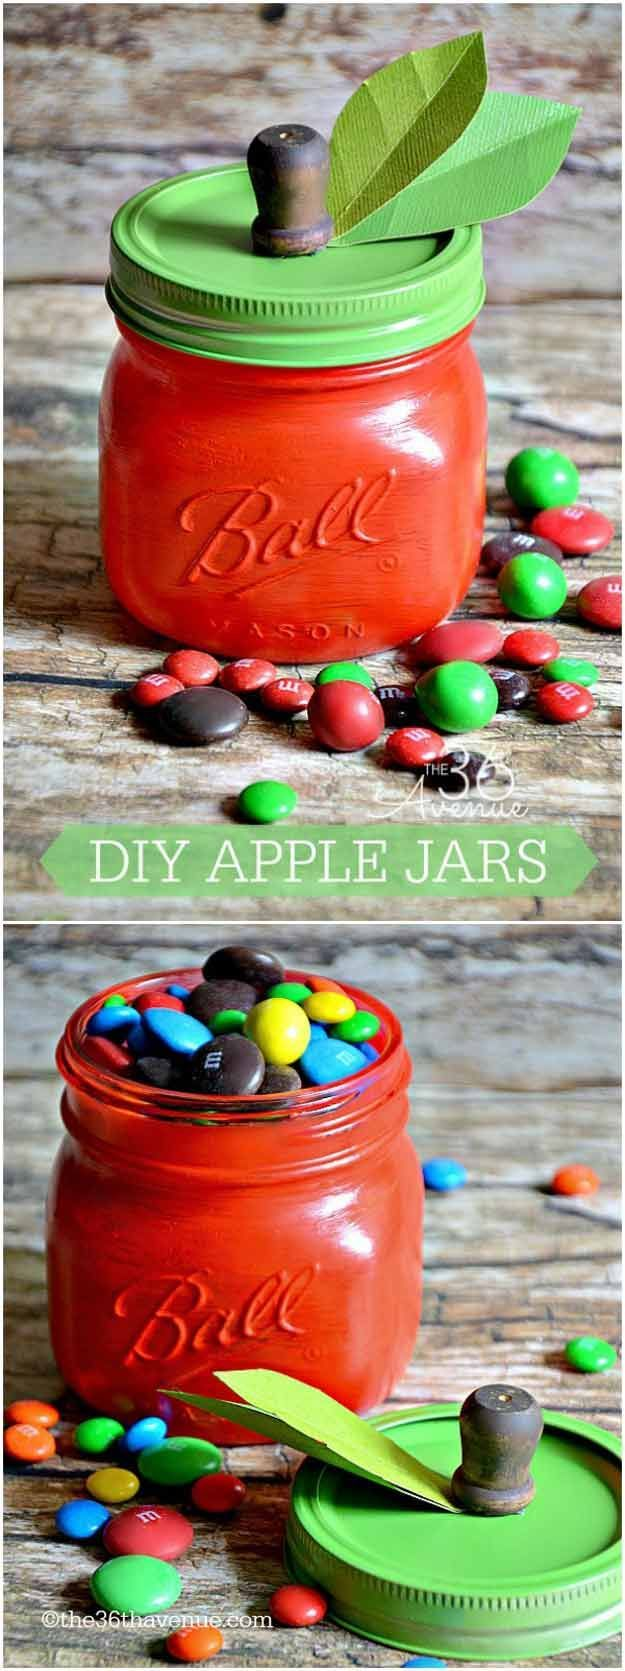 17 best ideas about baby food jars on pinterest baby for Baby food jar crafts pinterest